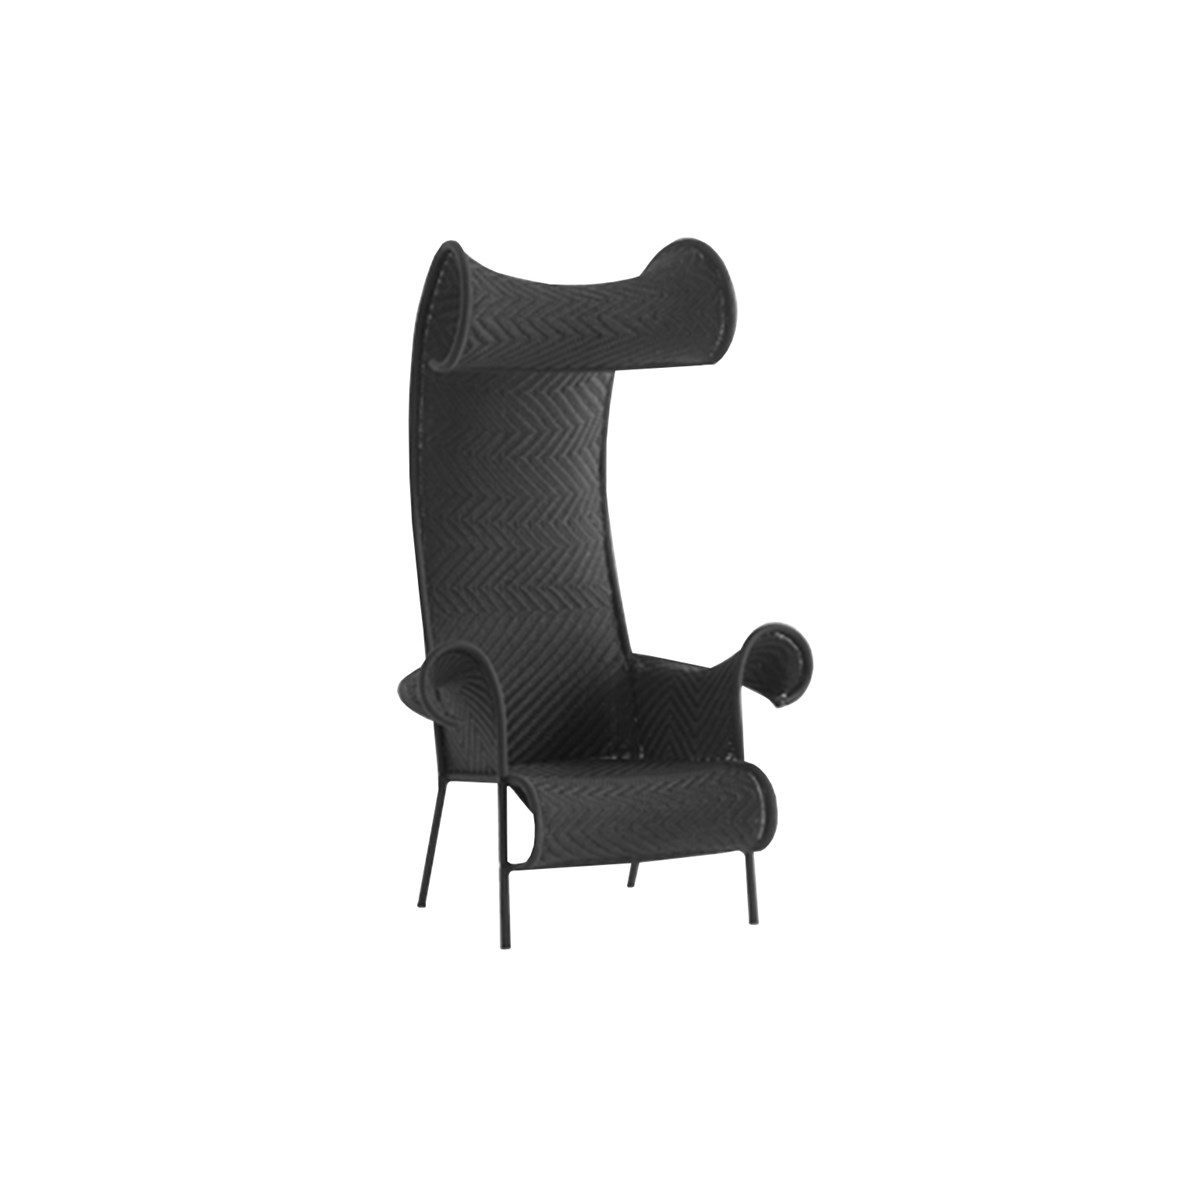 Moroso-Tord-Boontje-Shadowy-Outdoor-Armchair-Matisse-1